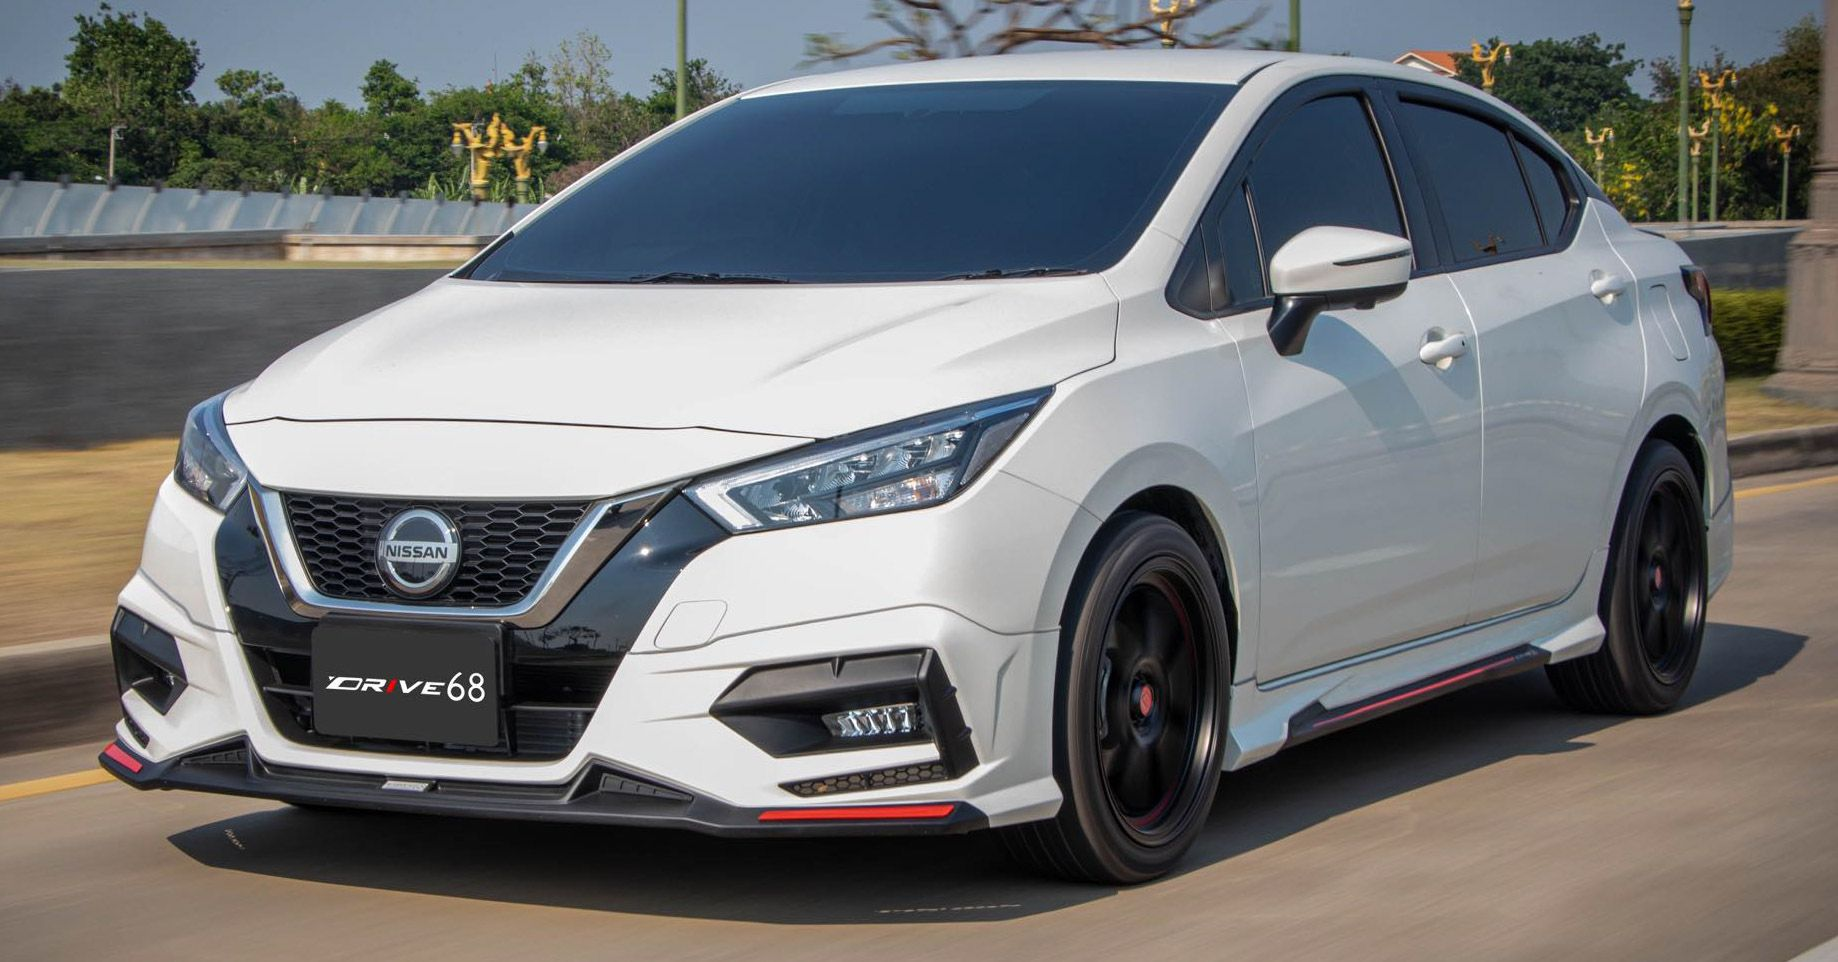 Thailand S Automotive Aftermarket Is A Large One And It Now Has Its Sights Set On The Latest Fourth Generation Nissan Al In 2020 Nissan Almera Nissan Automotive News